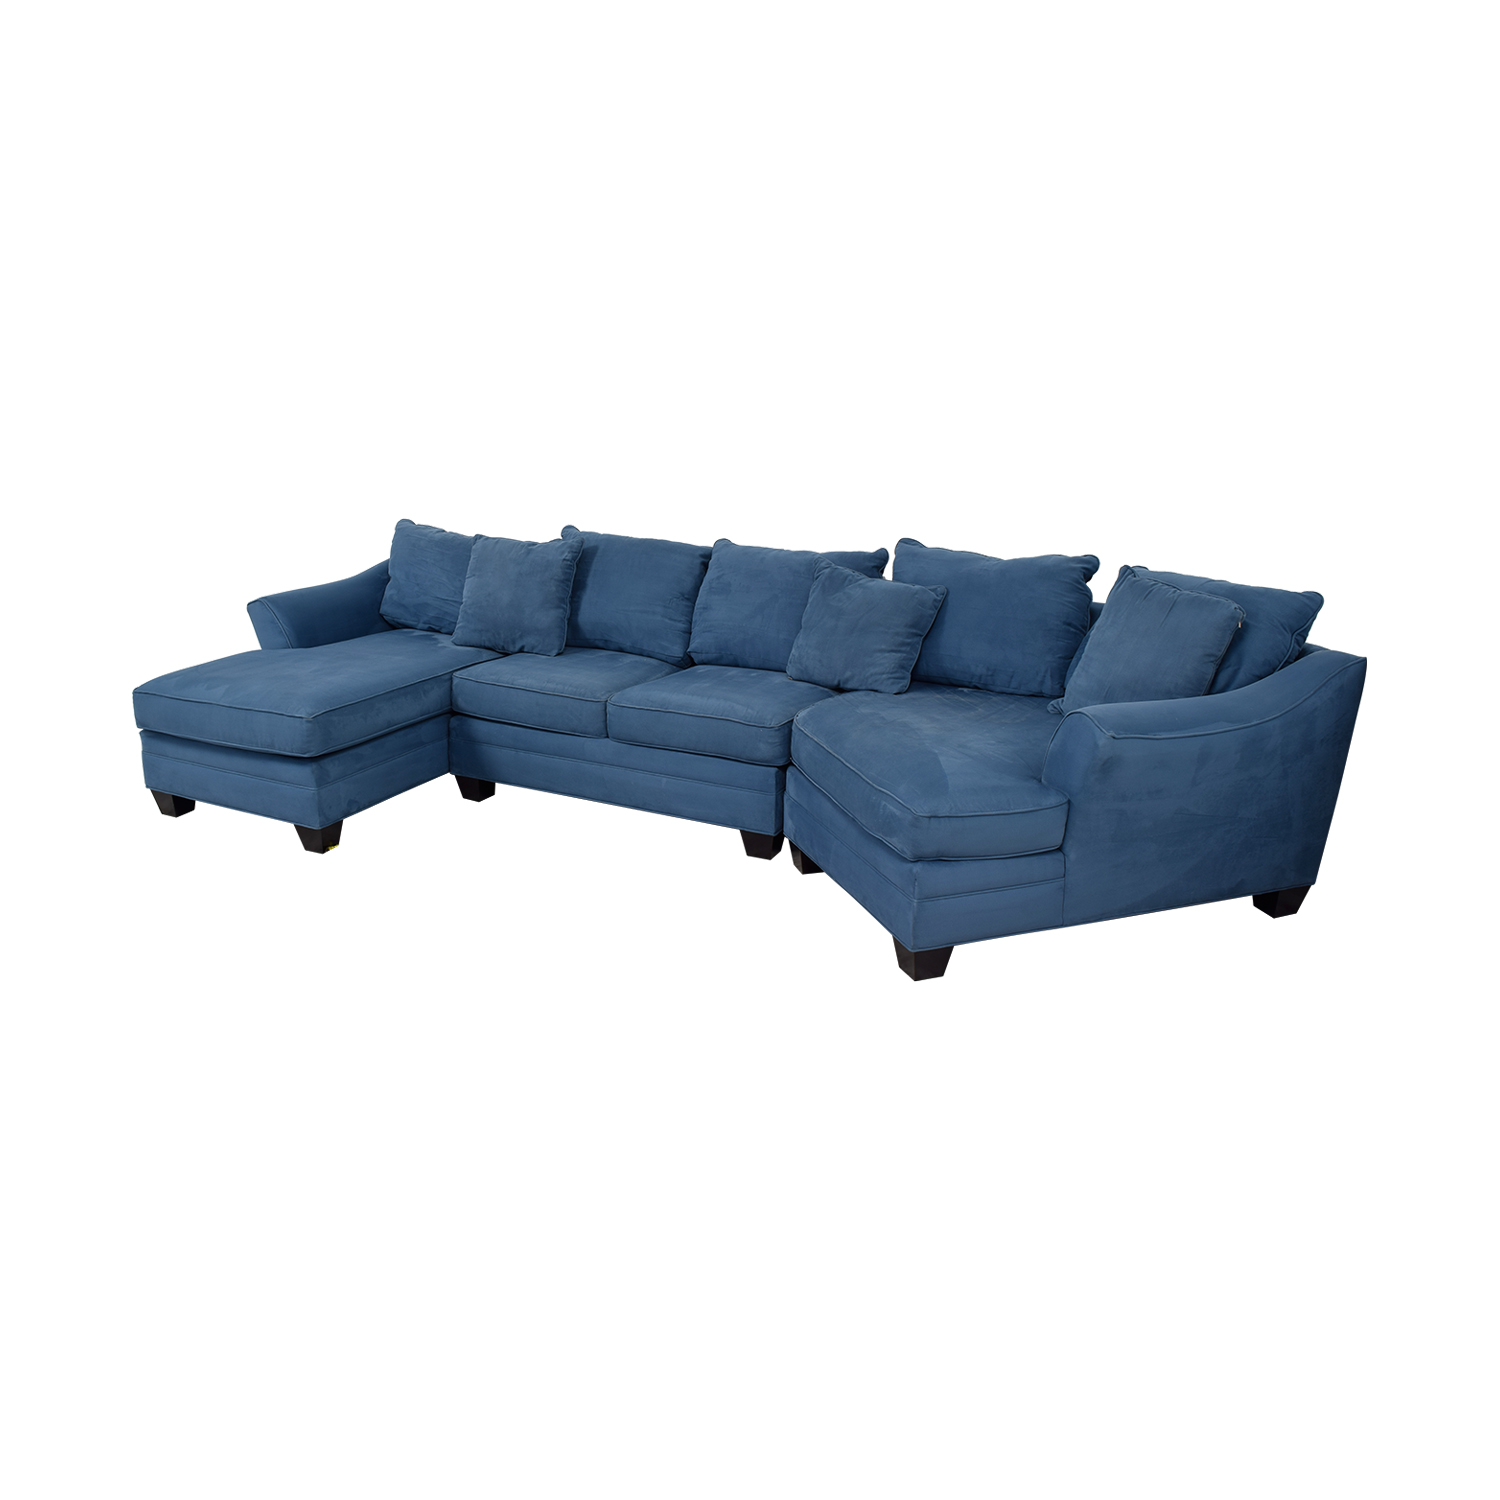 Hm Richards Sofa Collection Baci Living Room